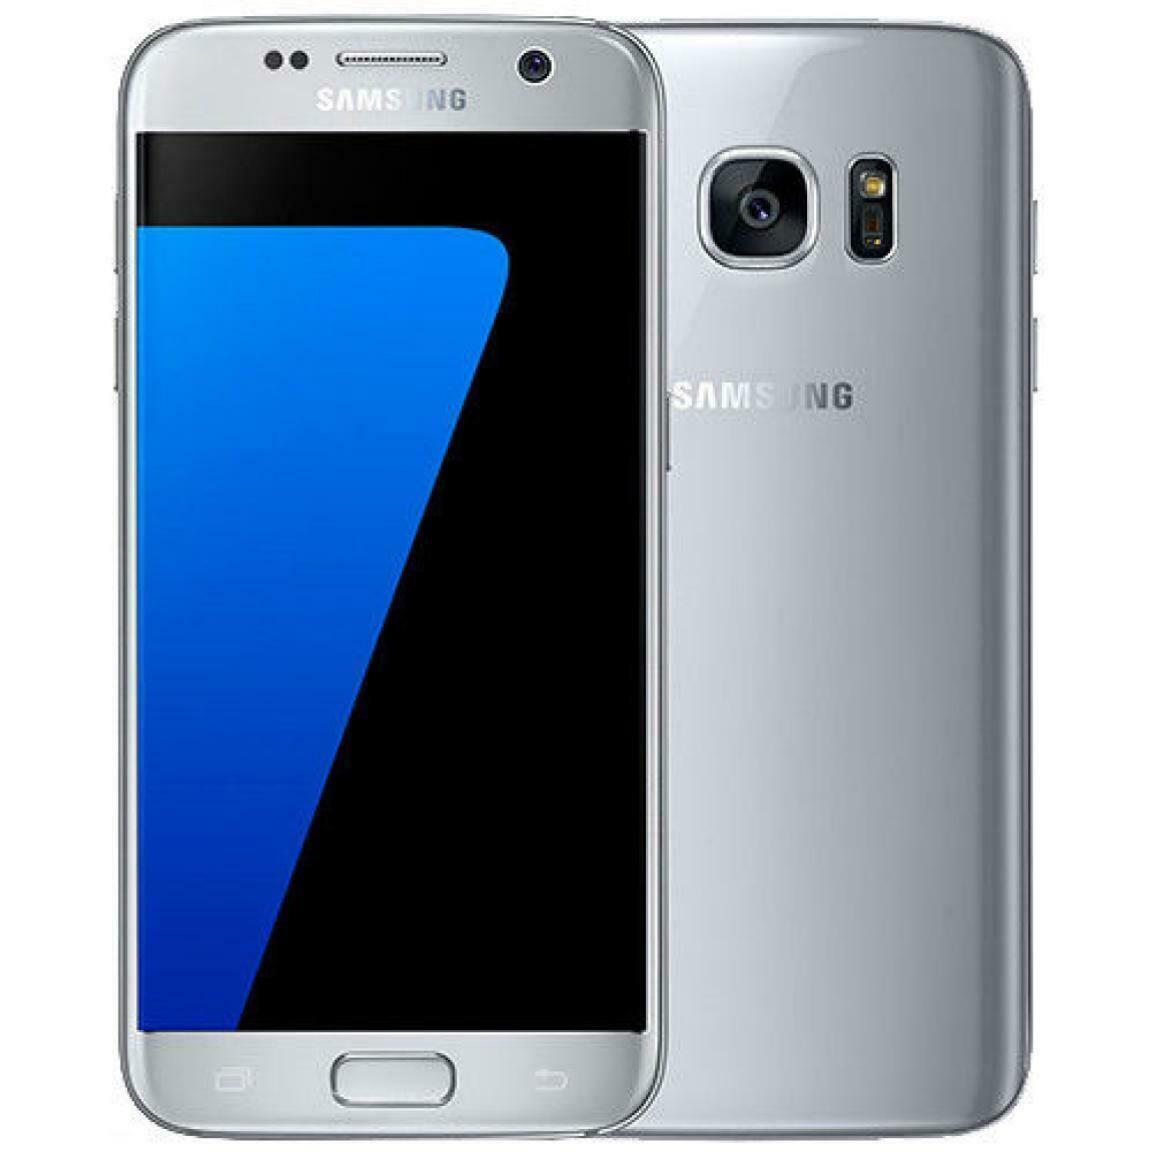 Samsung Galaxy S7 SM-G930V - 32GB - Verizon Unlocked Smartphone 9/10